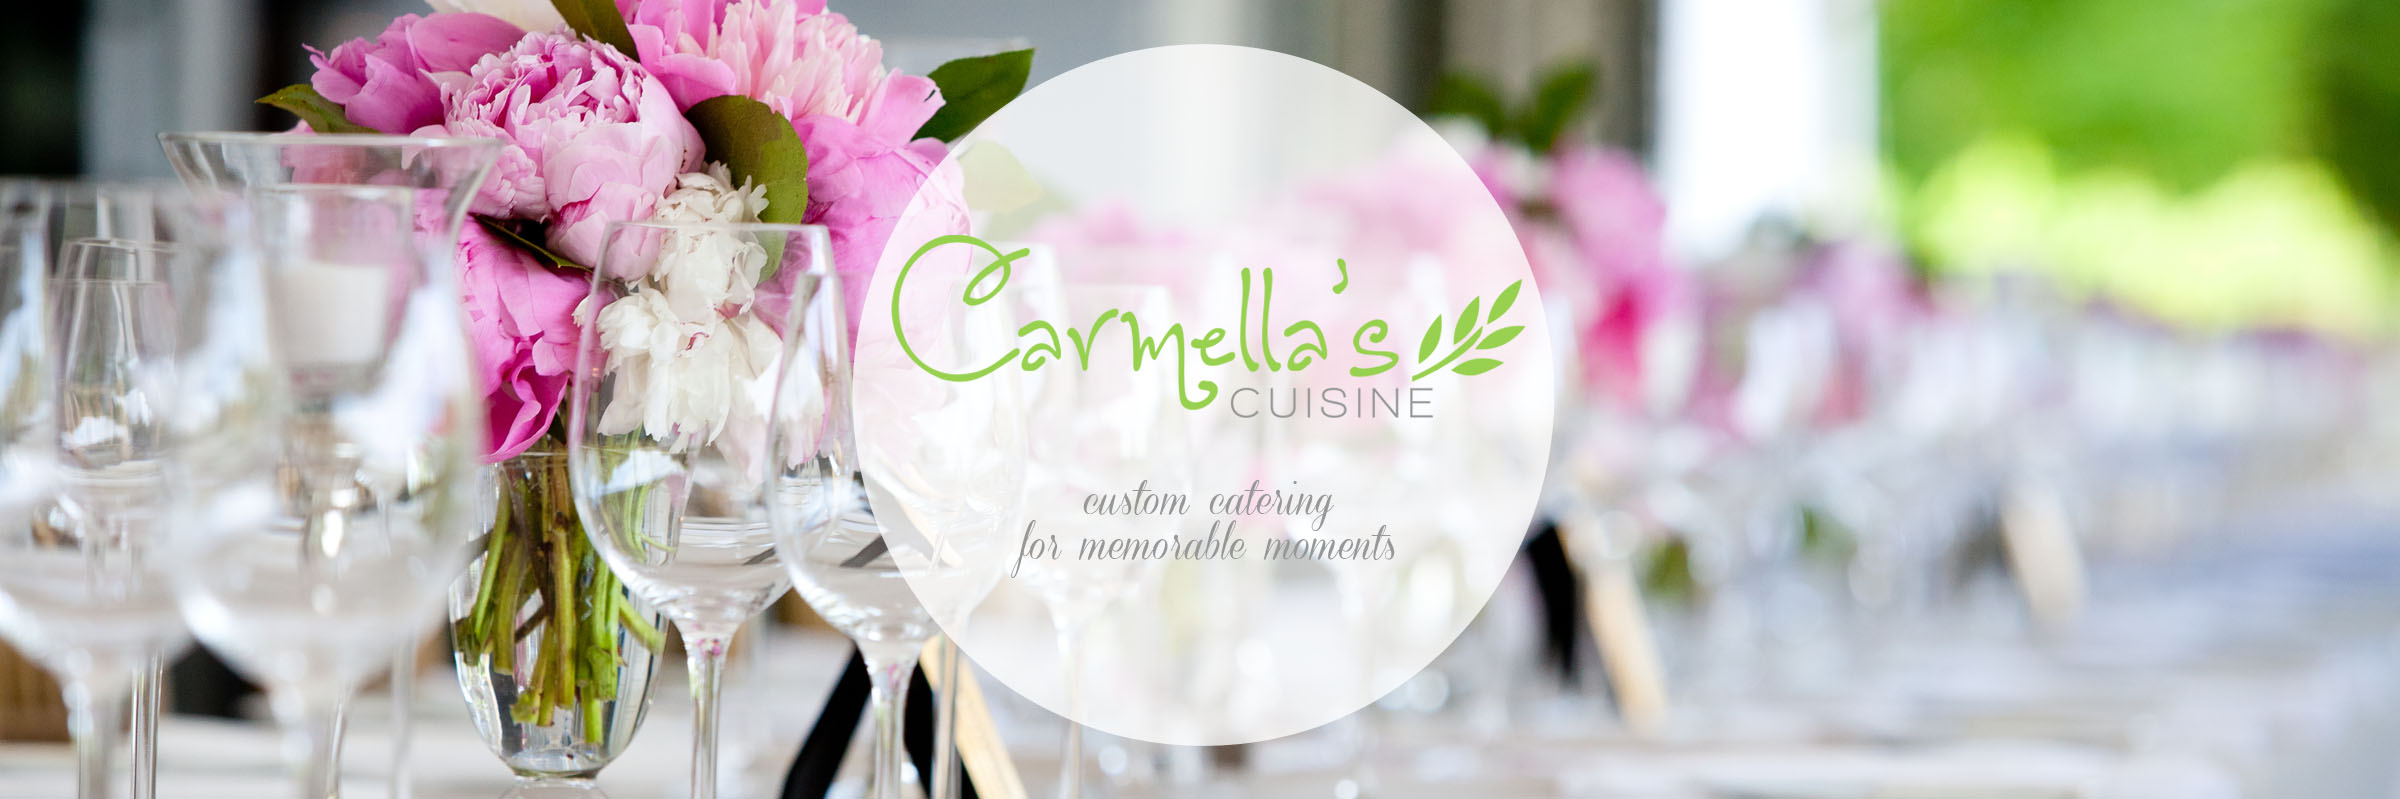 Welcome to Carmella's Cuisine